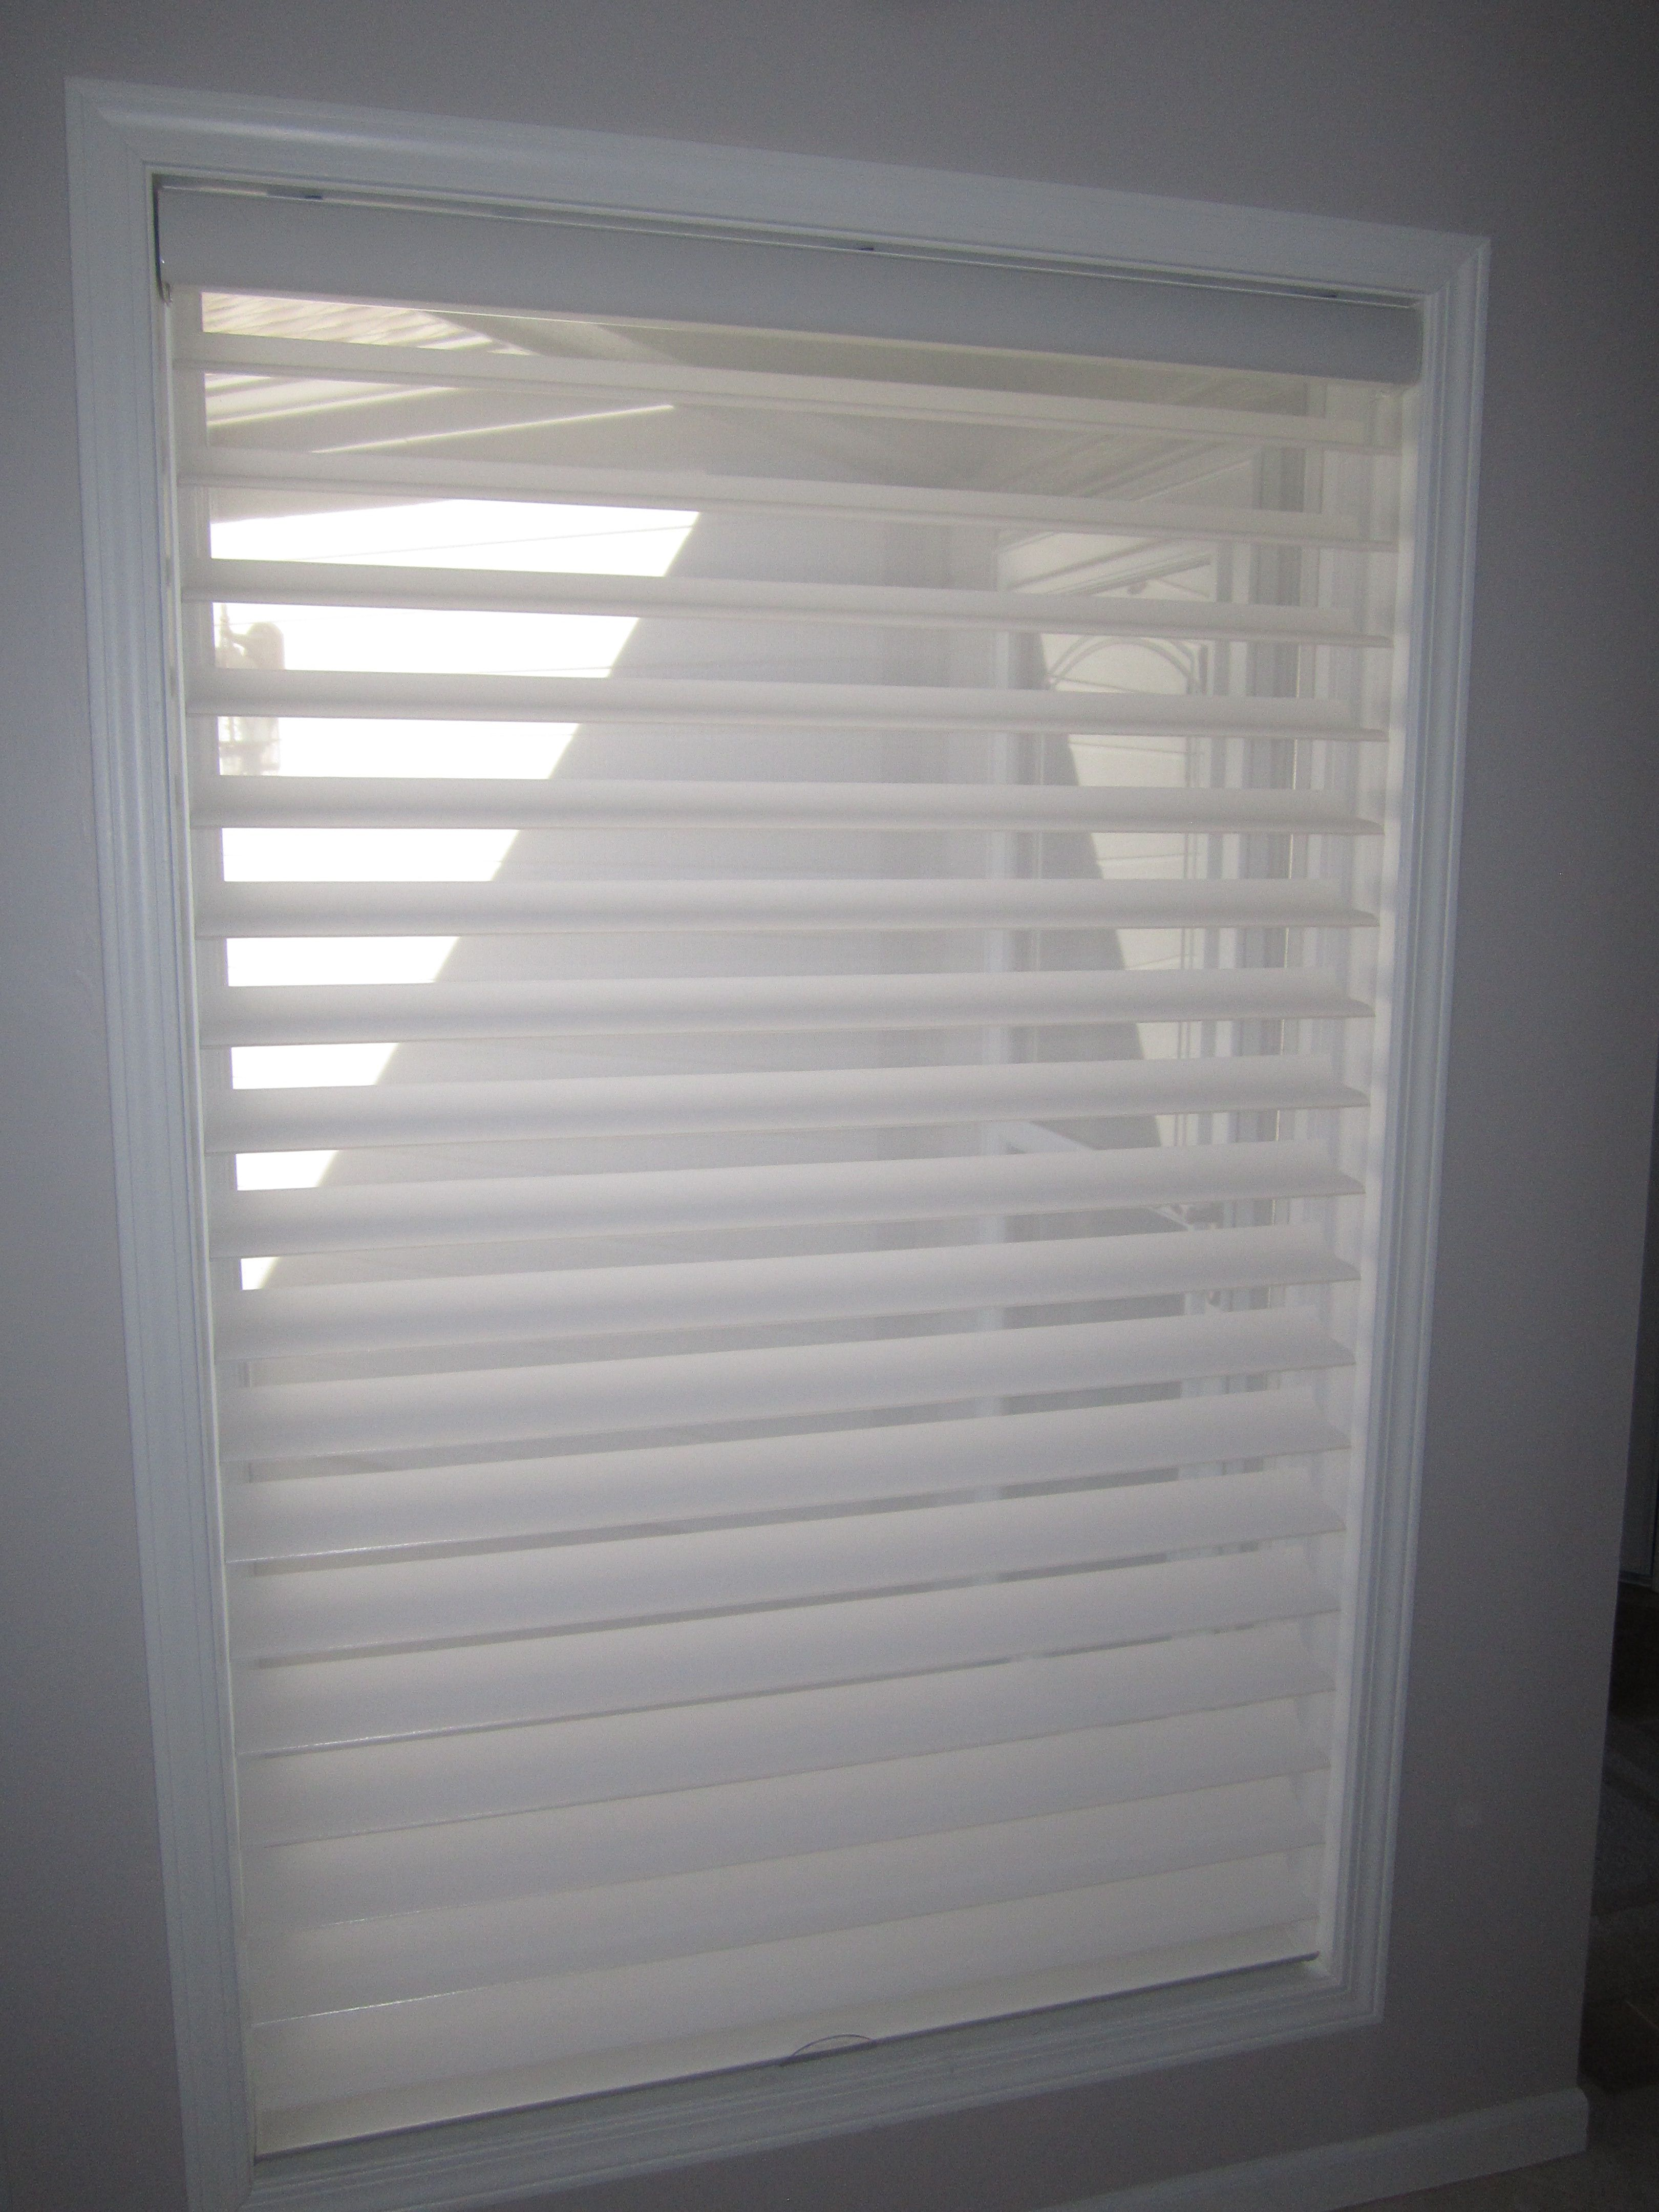 Zebra window coverings  silhouettes come in a variety of colors and different fabrics and